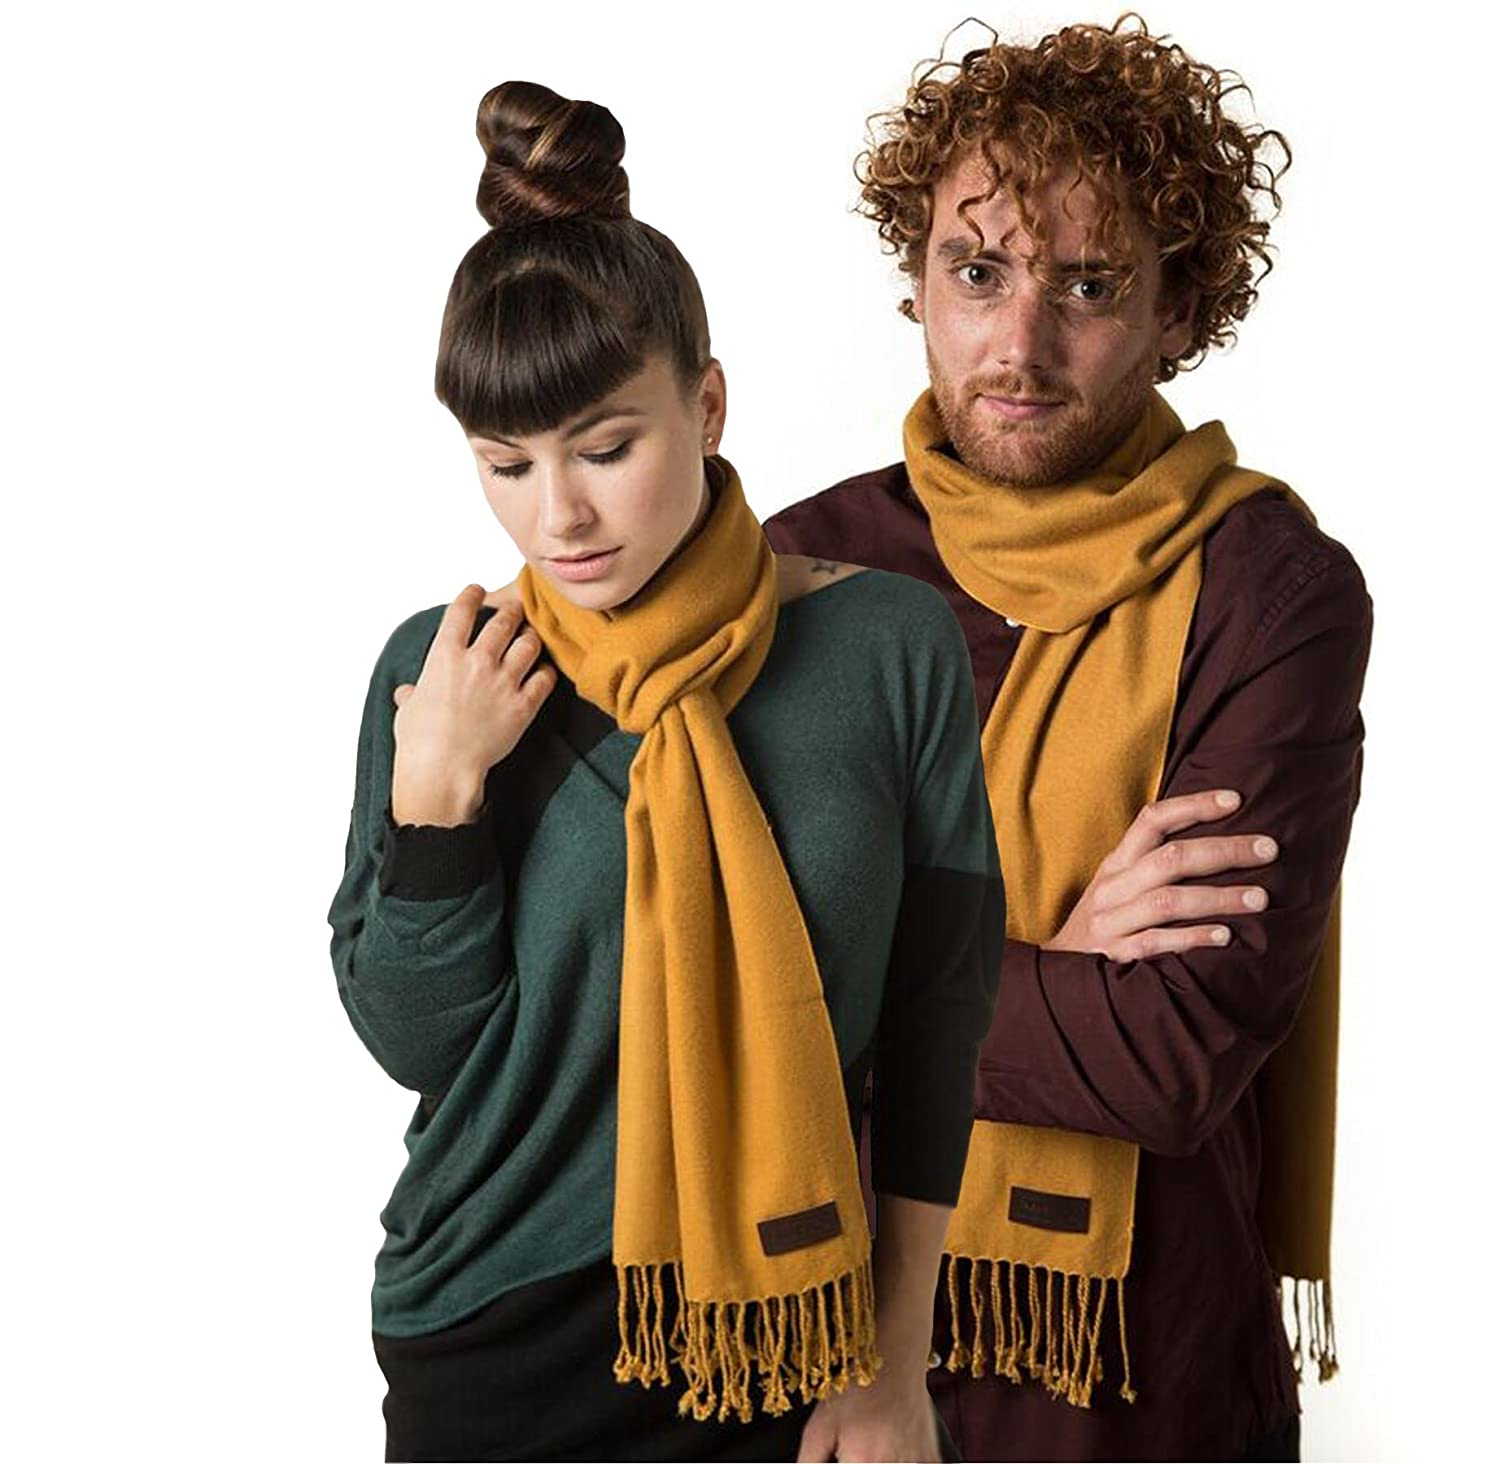 Marinos Winter Cashmere Feel Unisex Men And Women Scarf 100 Shawl Ws 06 Cotton Fashion Scarves In Elegant Gift Box Camel At Amazon Mens Clothing Store